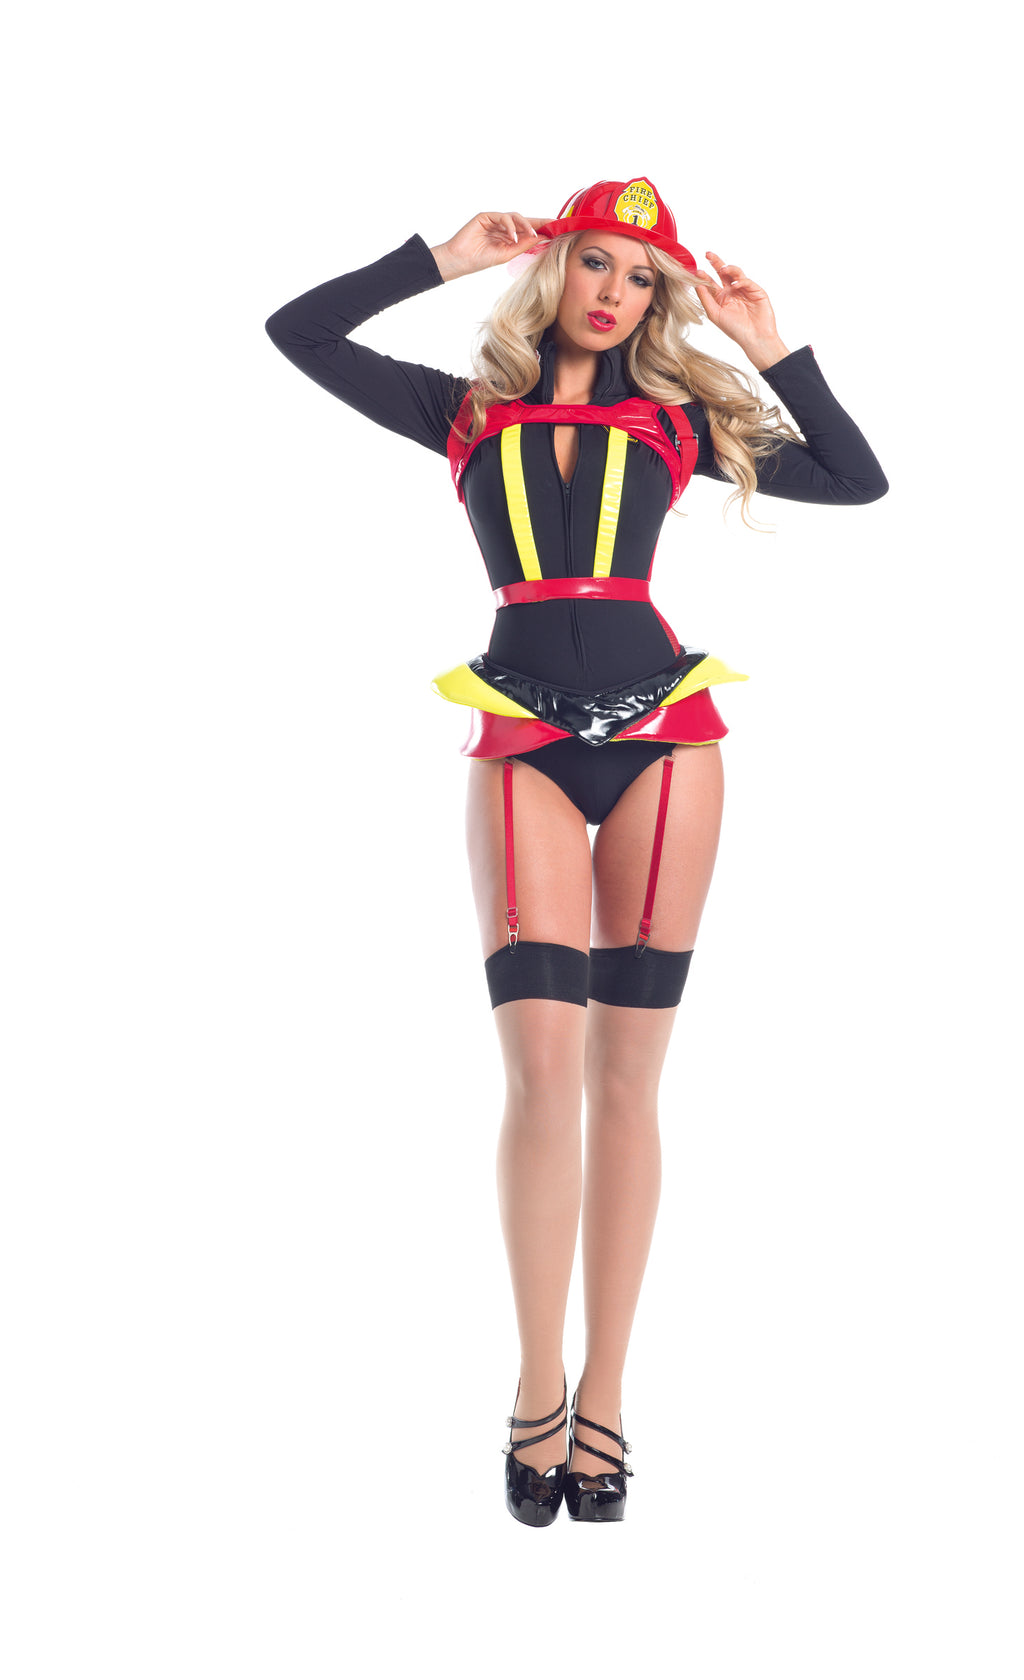 Adult-Women's-4-Piece-Sexy-Fire-Fighter-Romper-Halloween-Party-Costume